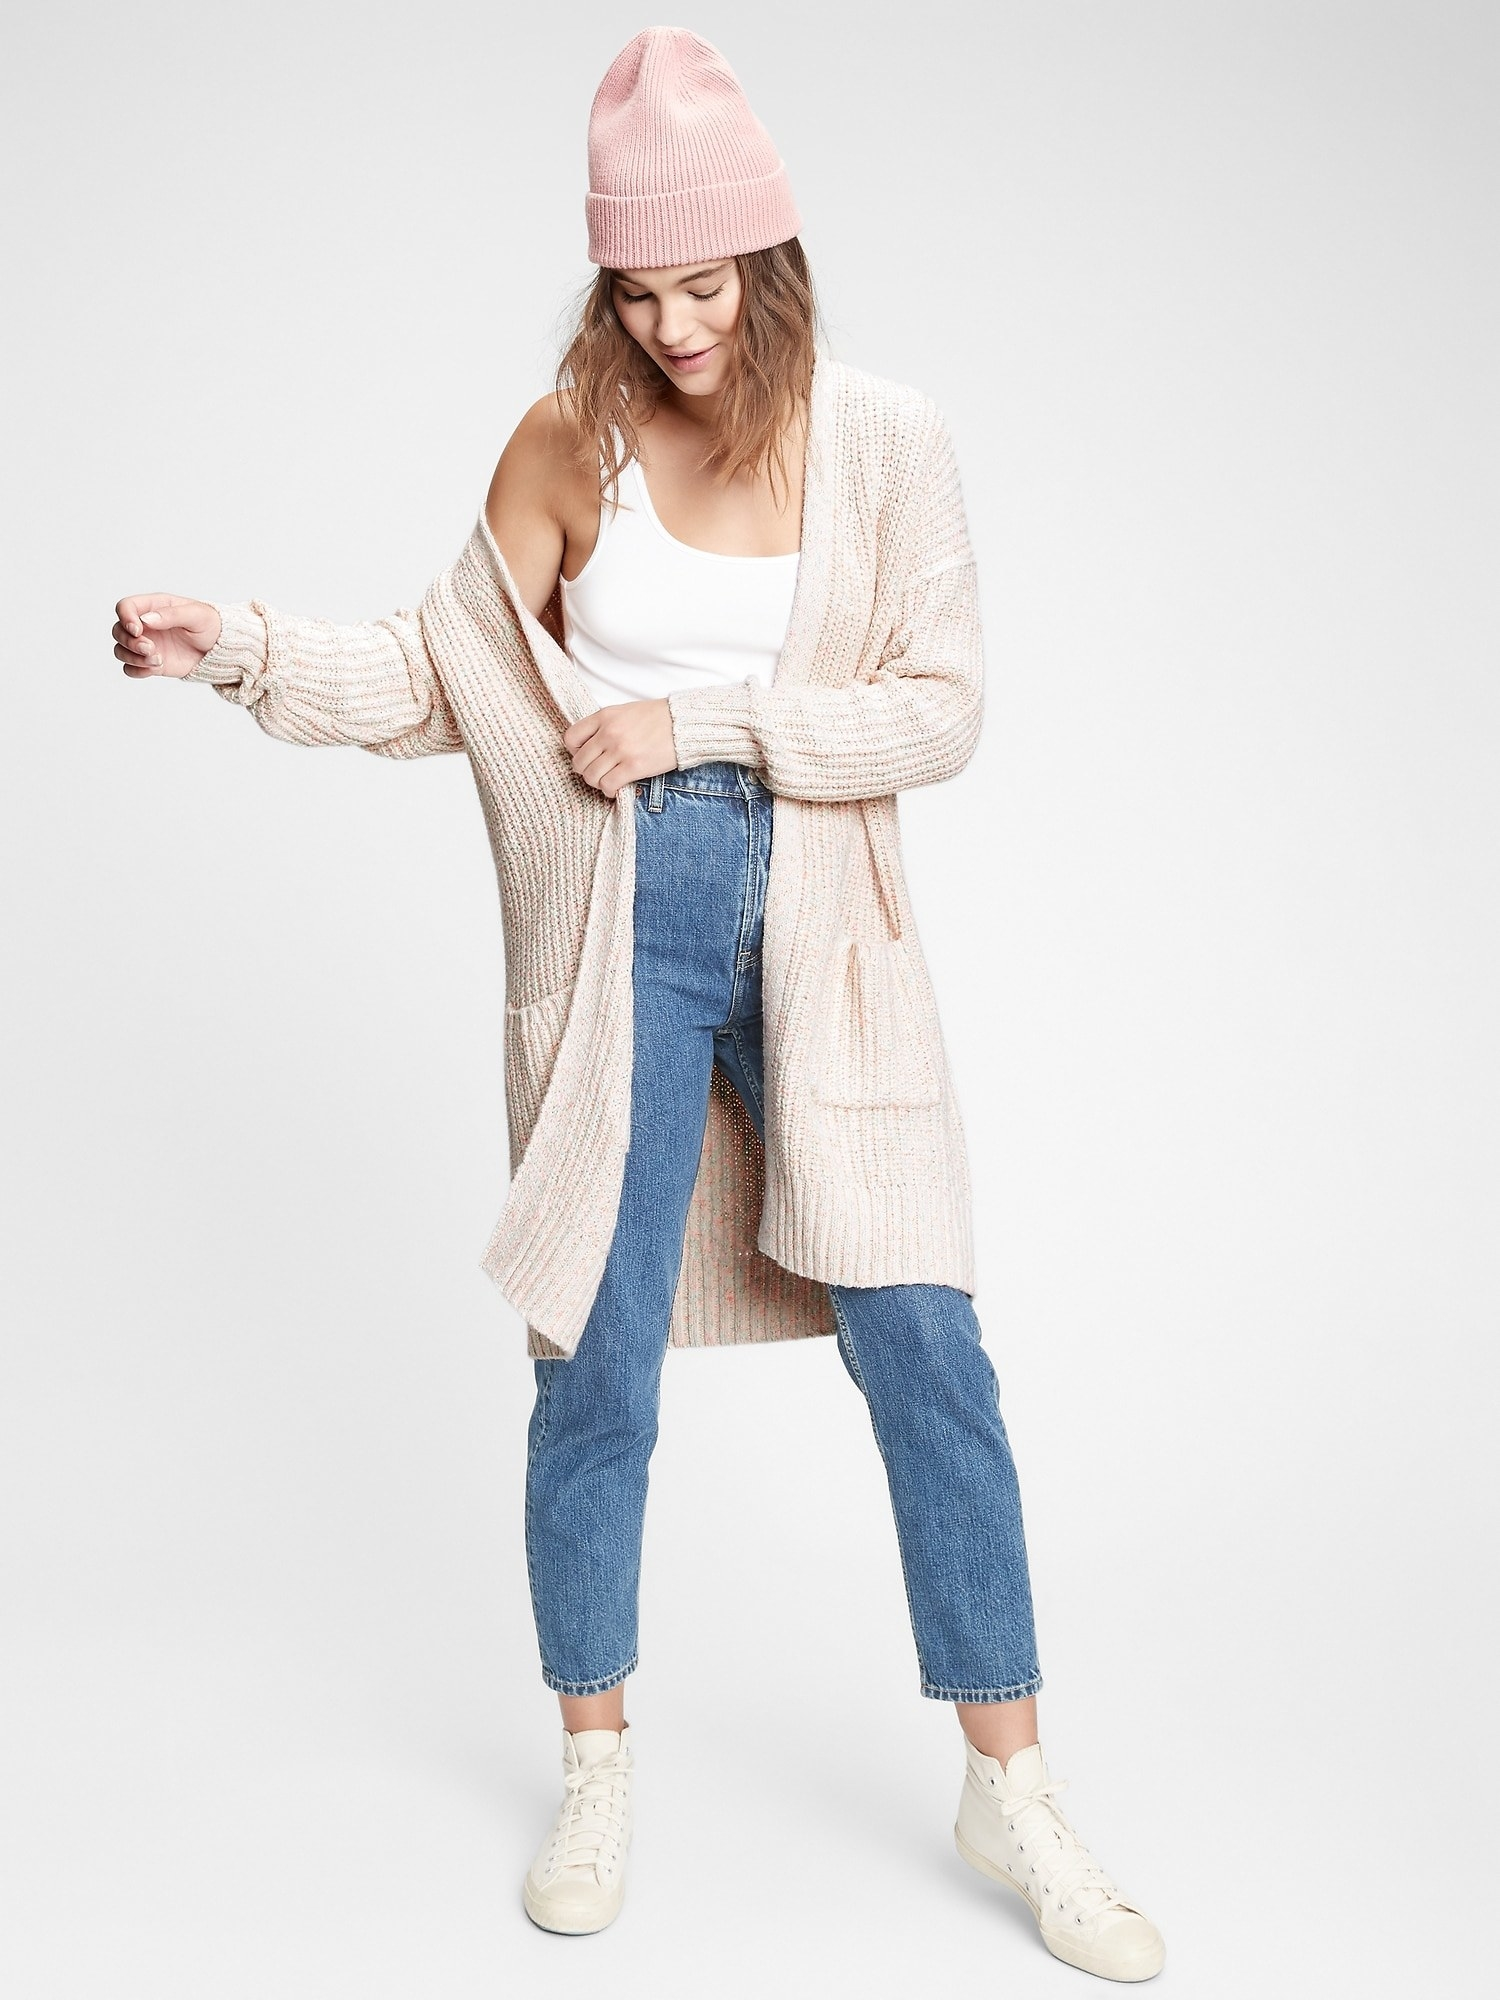 a model in an oatmeal colored long cardigan